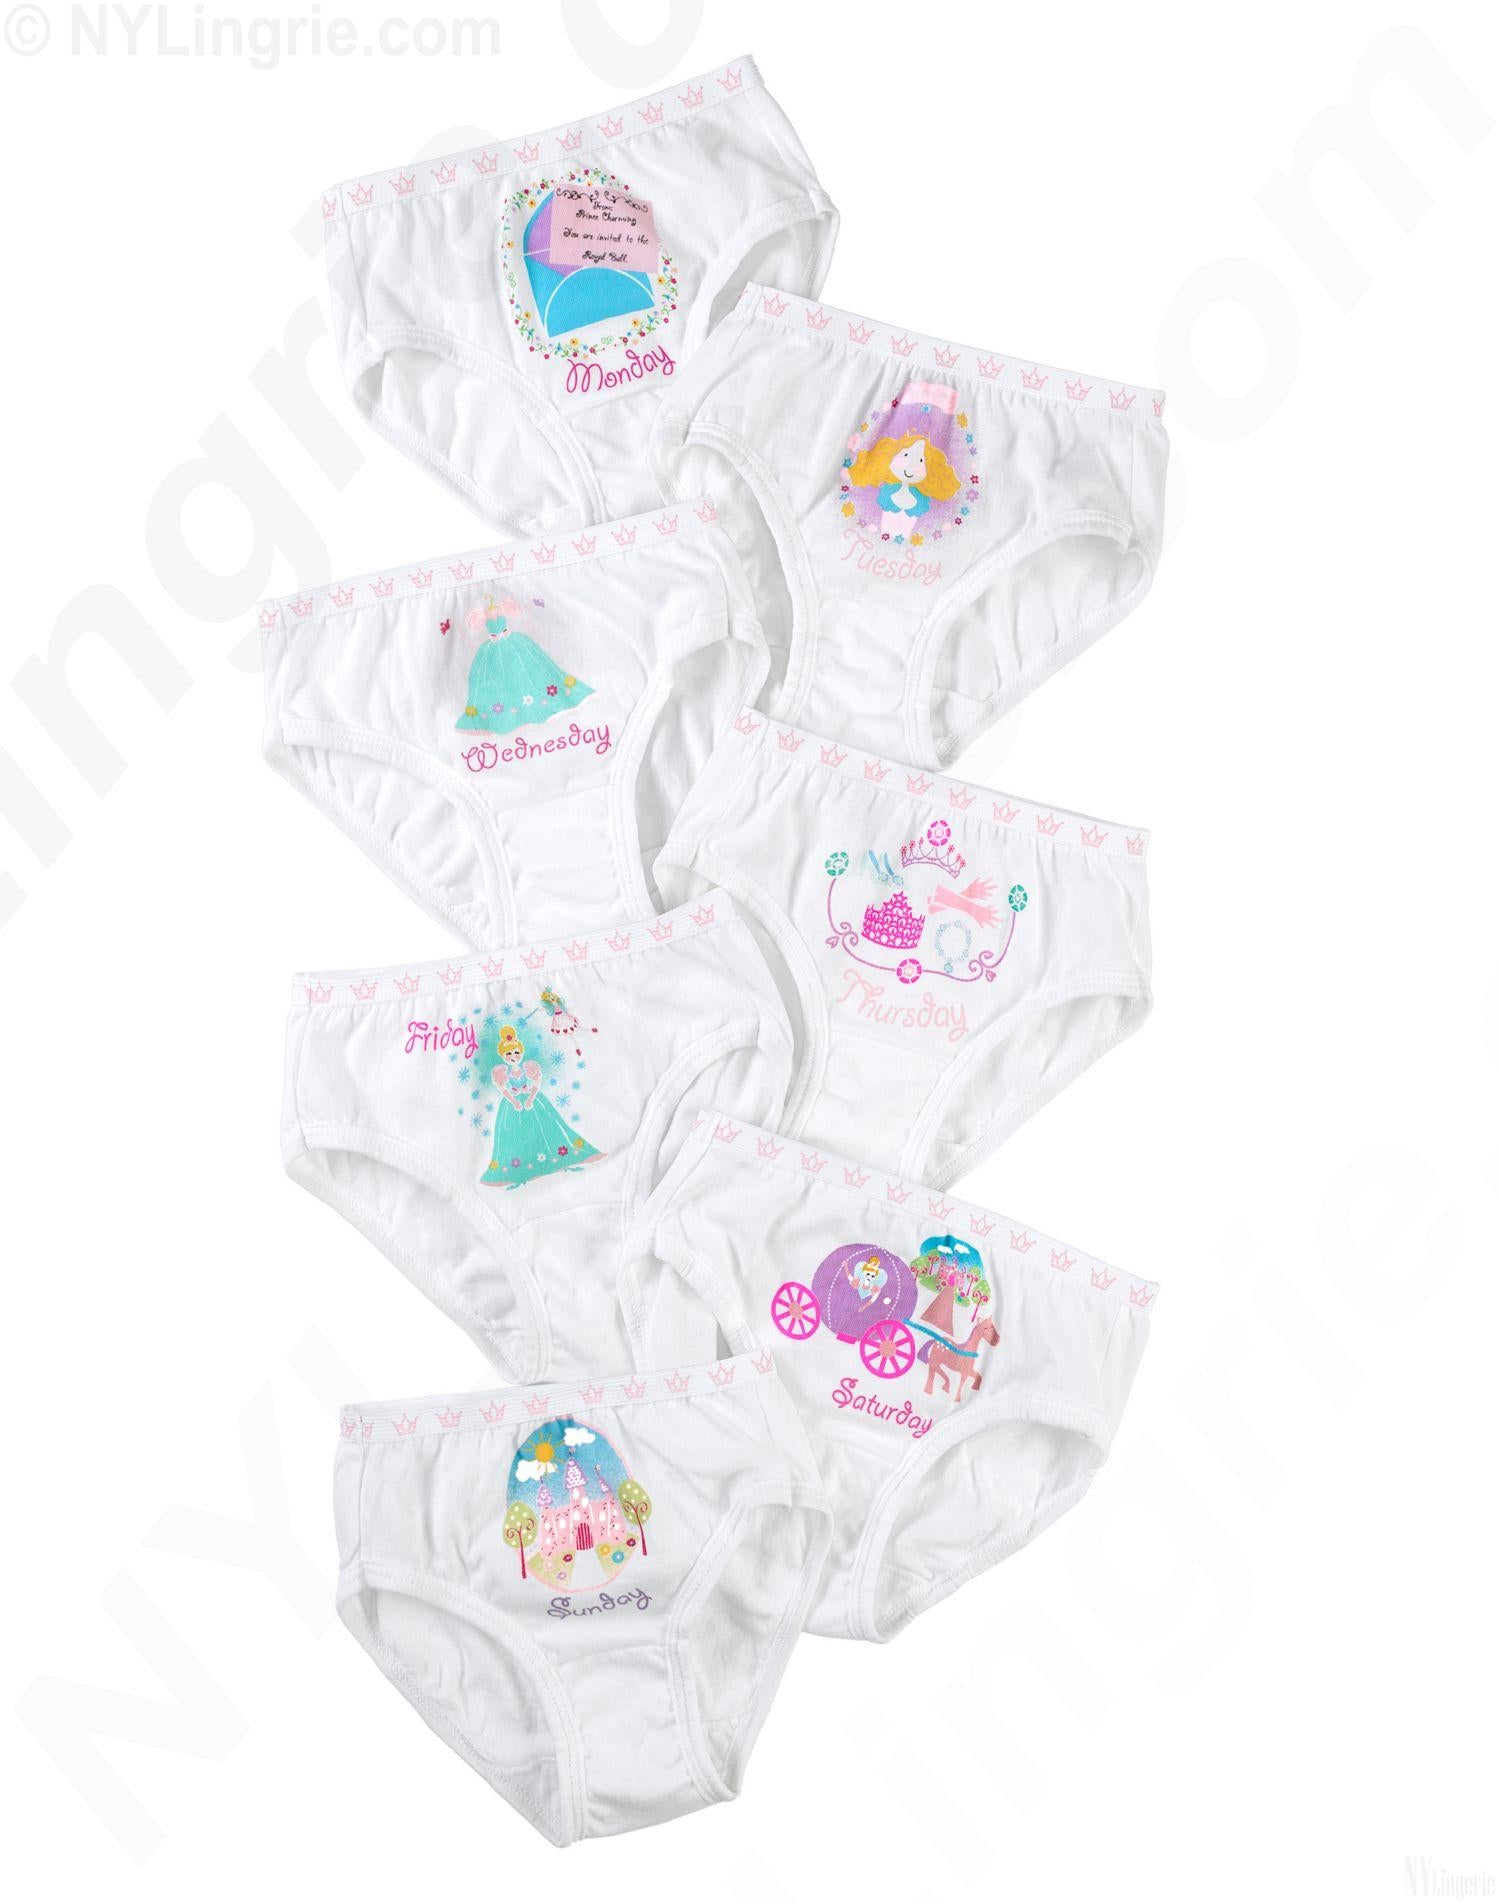 Hanes Toddler Girls Briefs Days of the Week 7 Pair 100/% Cotton 2T-3T  TAGLESS